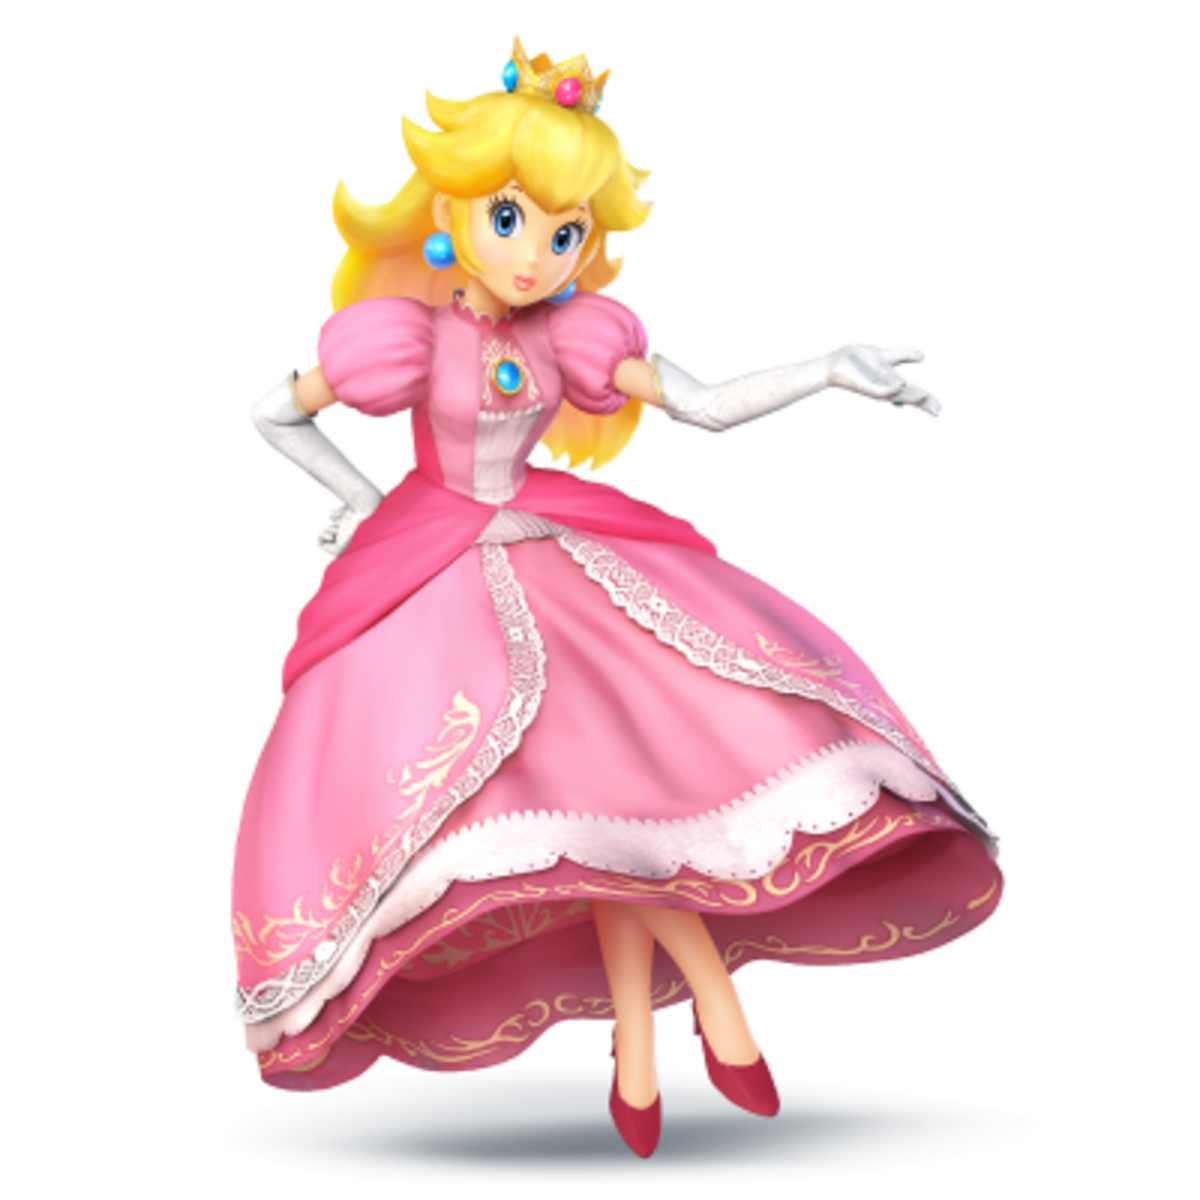 Princess of the Mushroom Kingdom